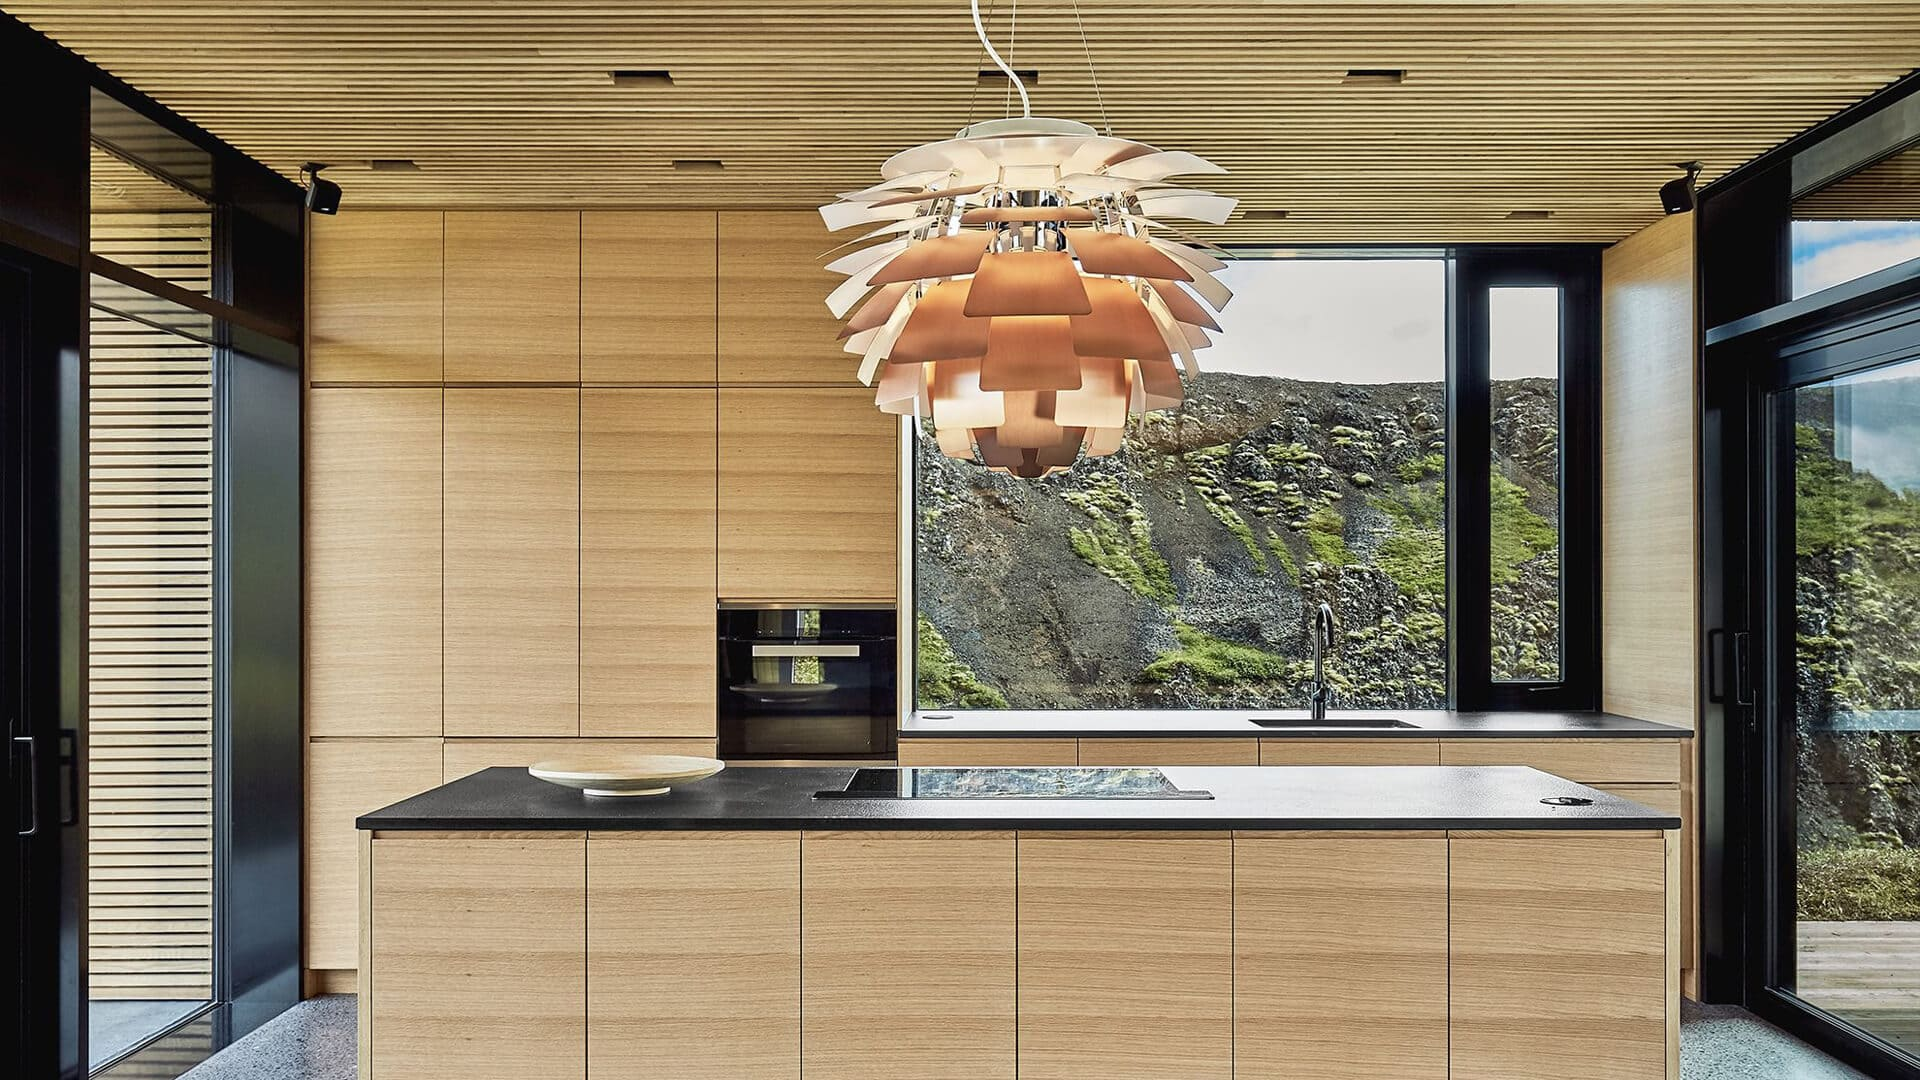 see the artichoke hanging lamp in interior